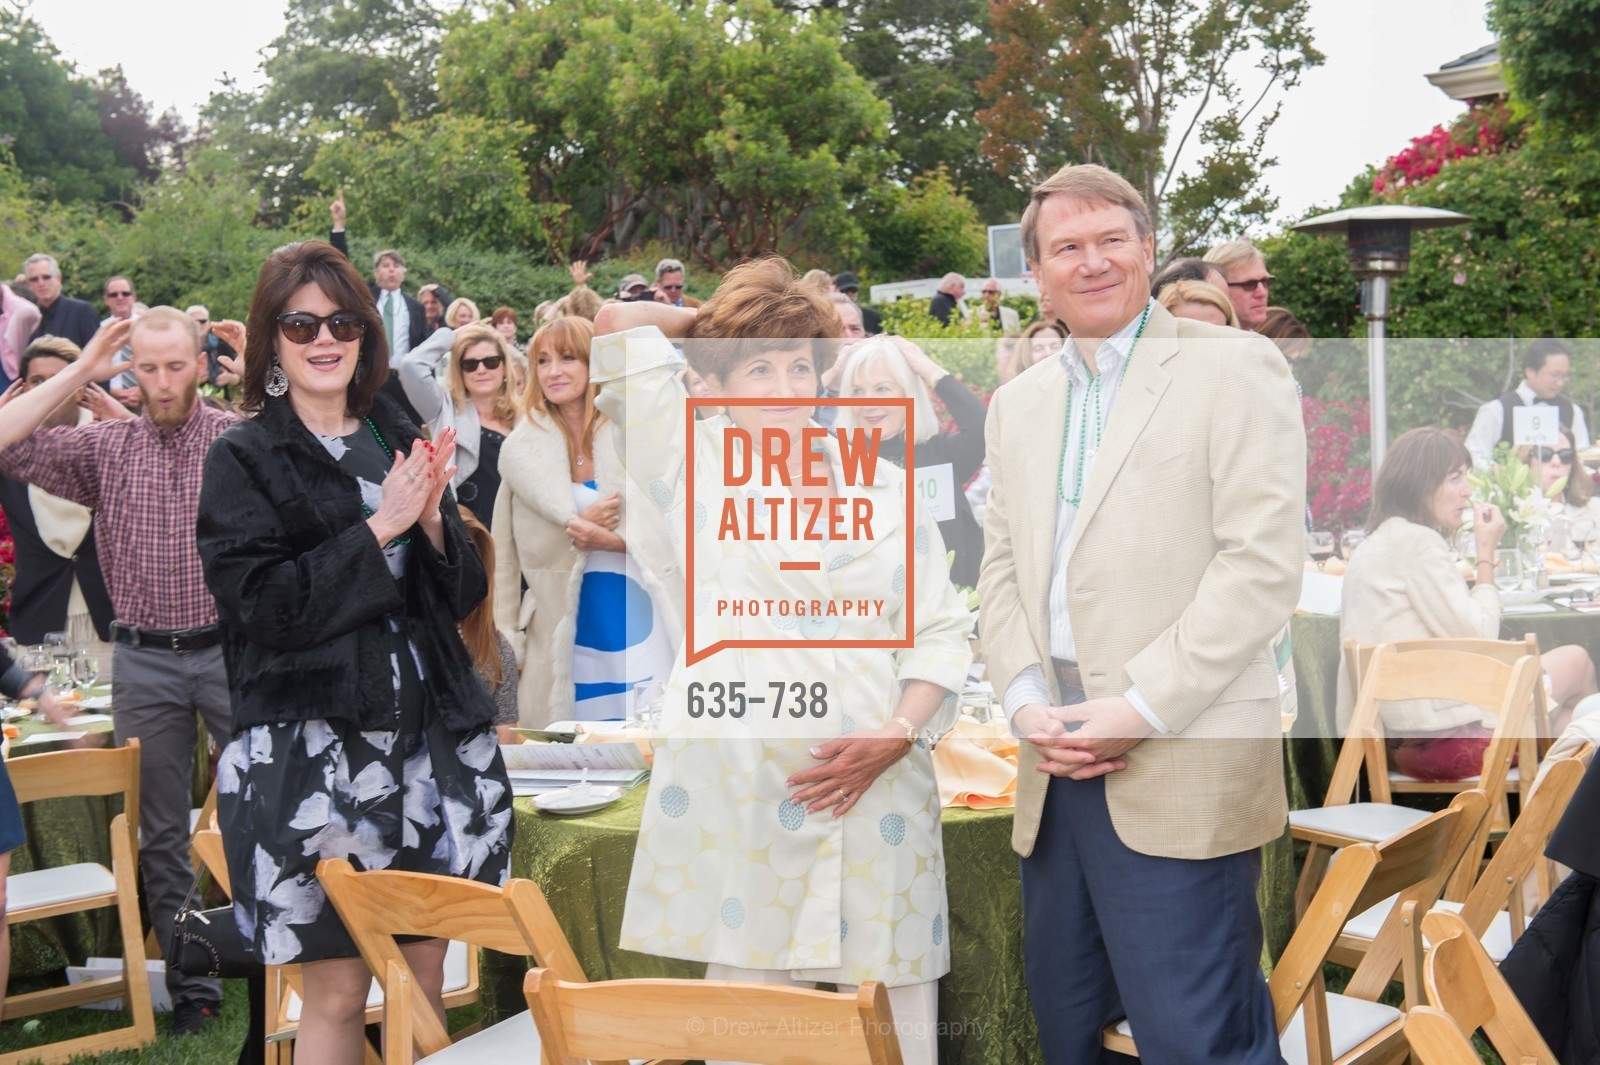 Elaine Mellis, Kathy Morris, Don Morris, LymeAid 2015, US, May 18th, 2015,Drew Altizer, Drew Altizer Photography, full-service agency, private events, San Francisco photographer, photographer california